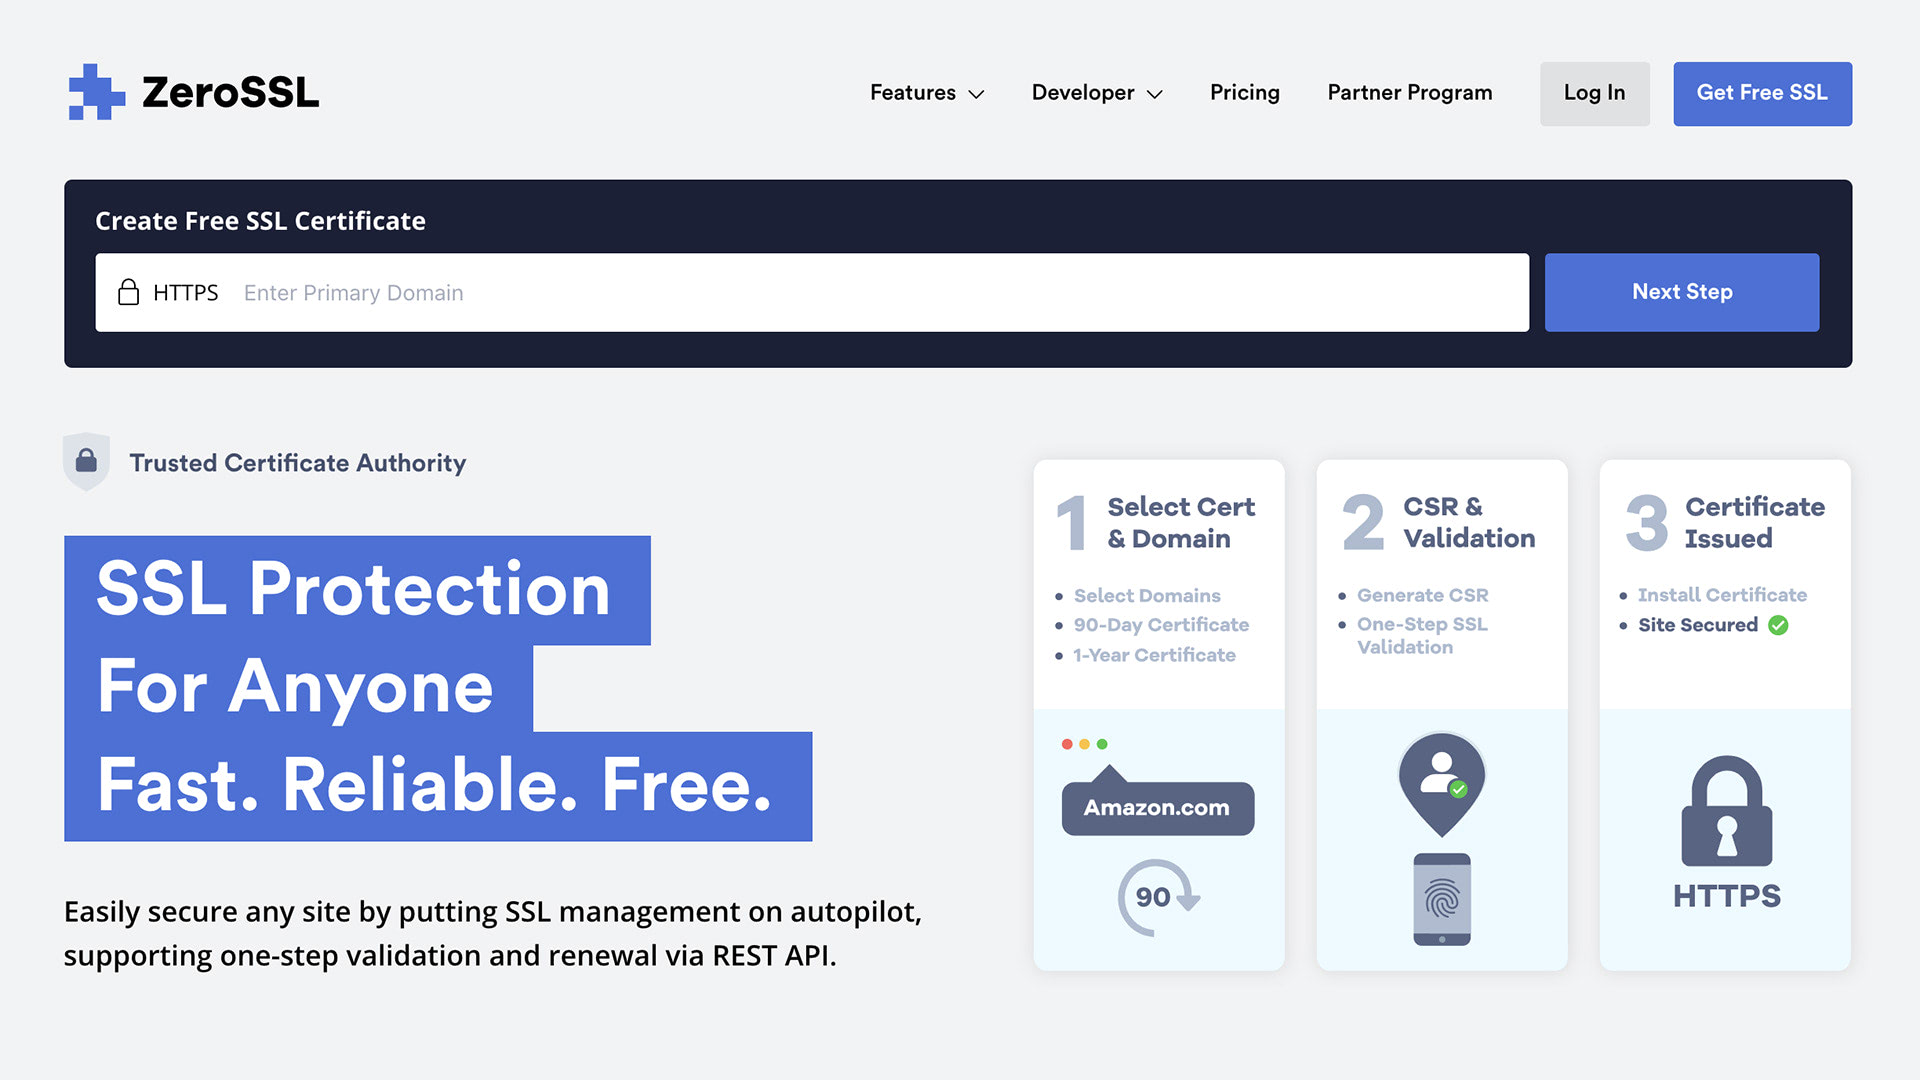 ZeroSSL Review - Free SSL Protection